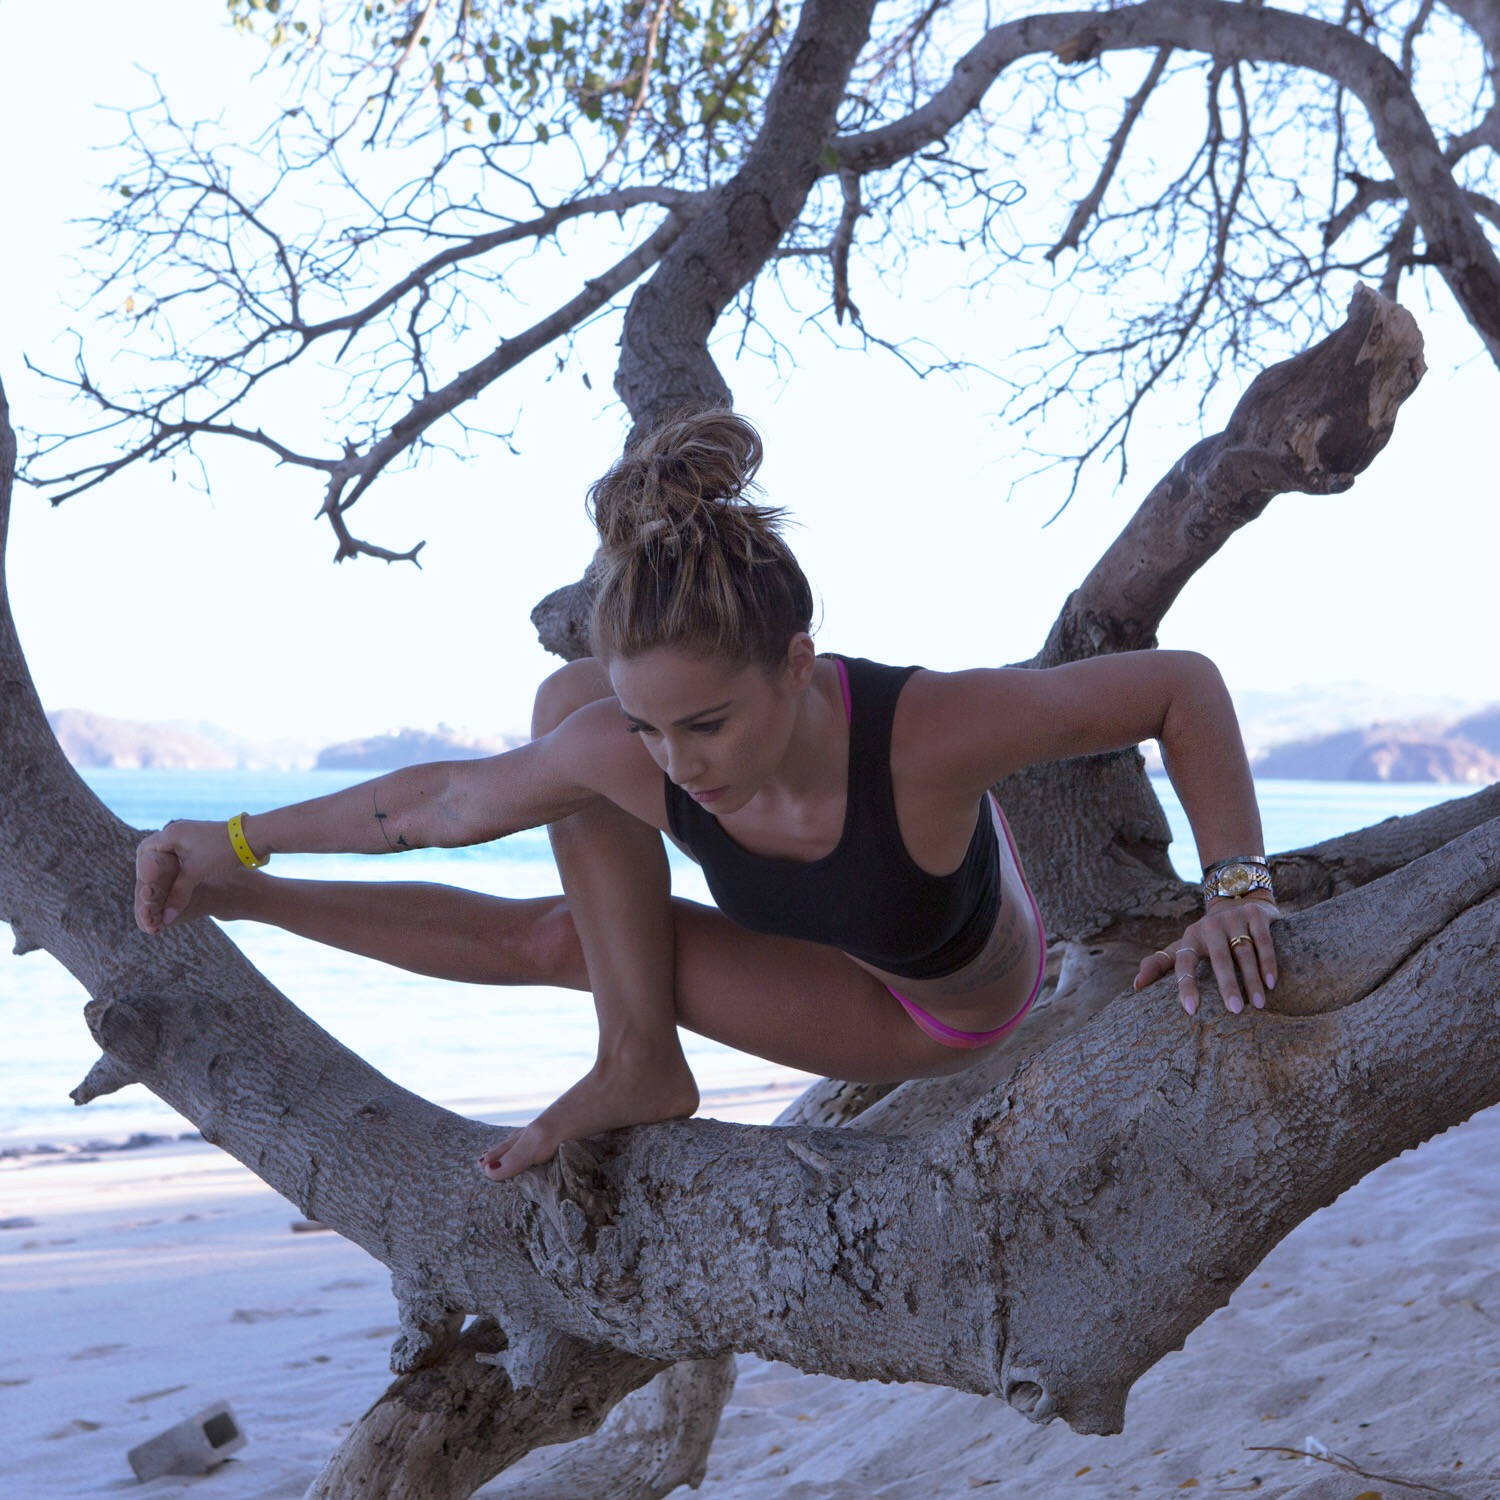 Costa Rica - Yoga on a tree